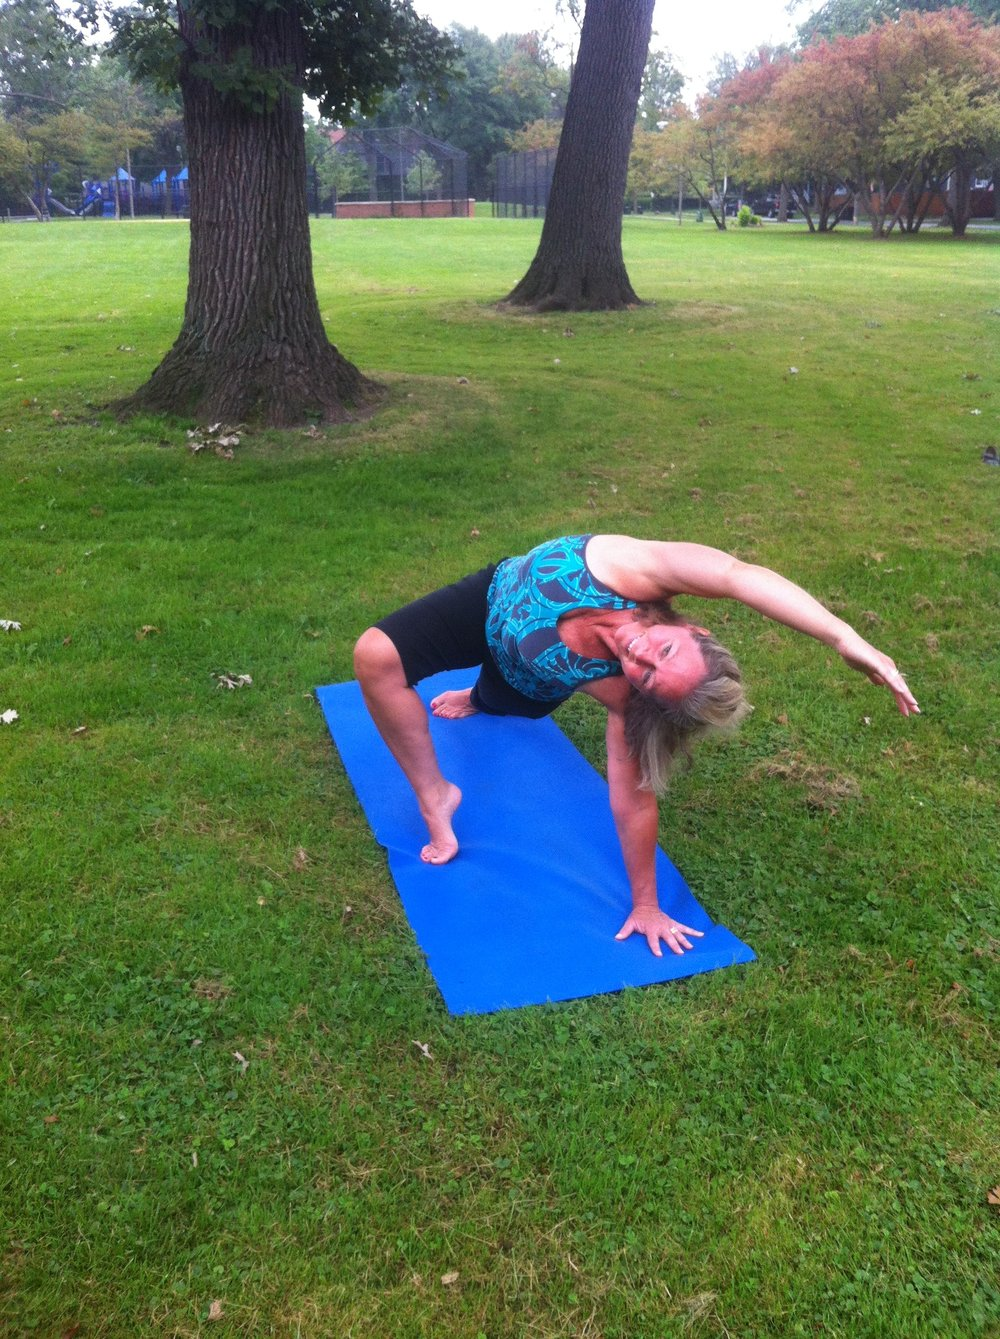 Colleen Patton  - Occupational Therapist & Yoga Instructor Colleen teaches her Therapeutic Yoga on Mondays at 5:45pm